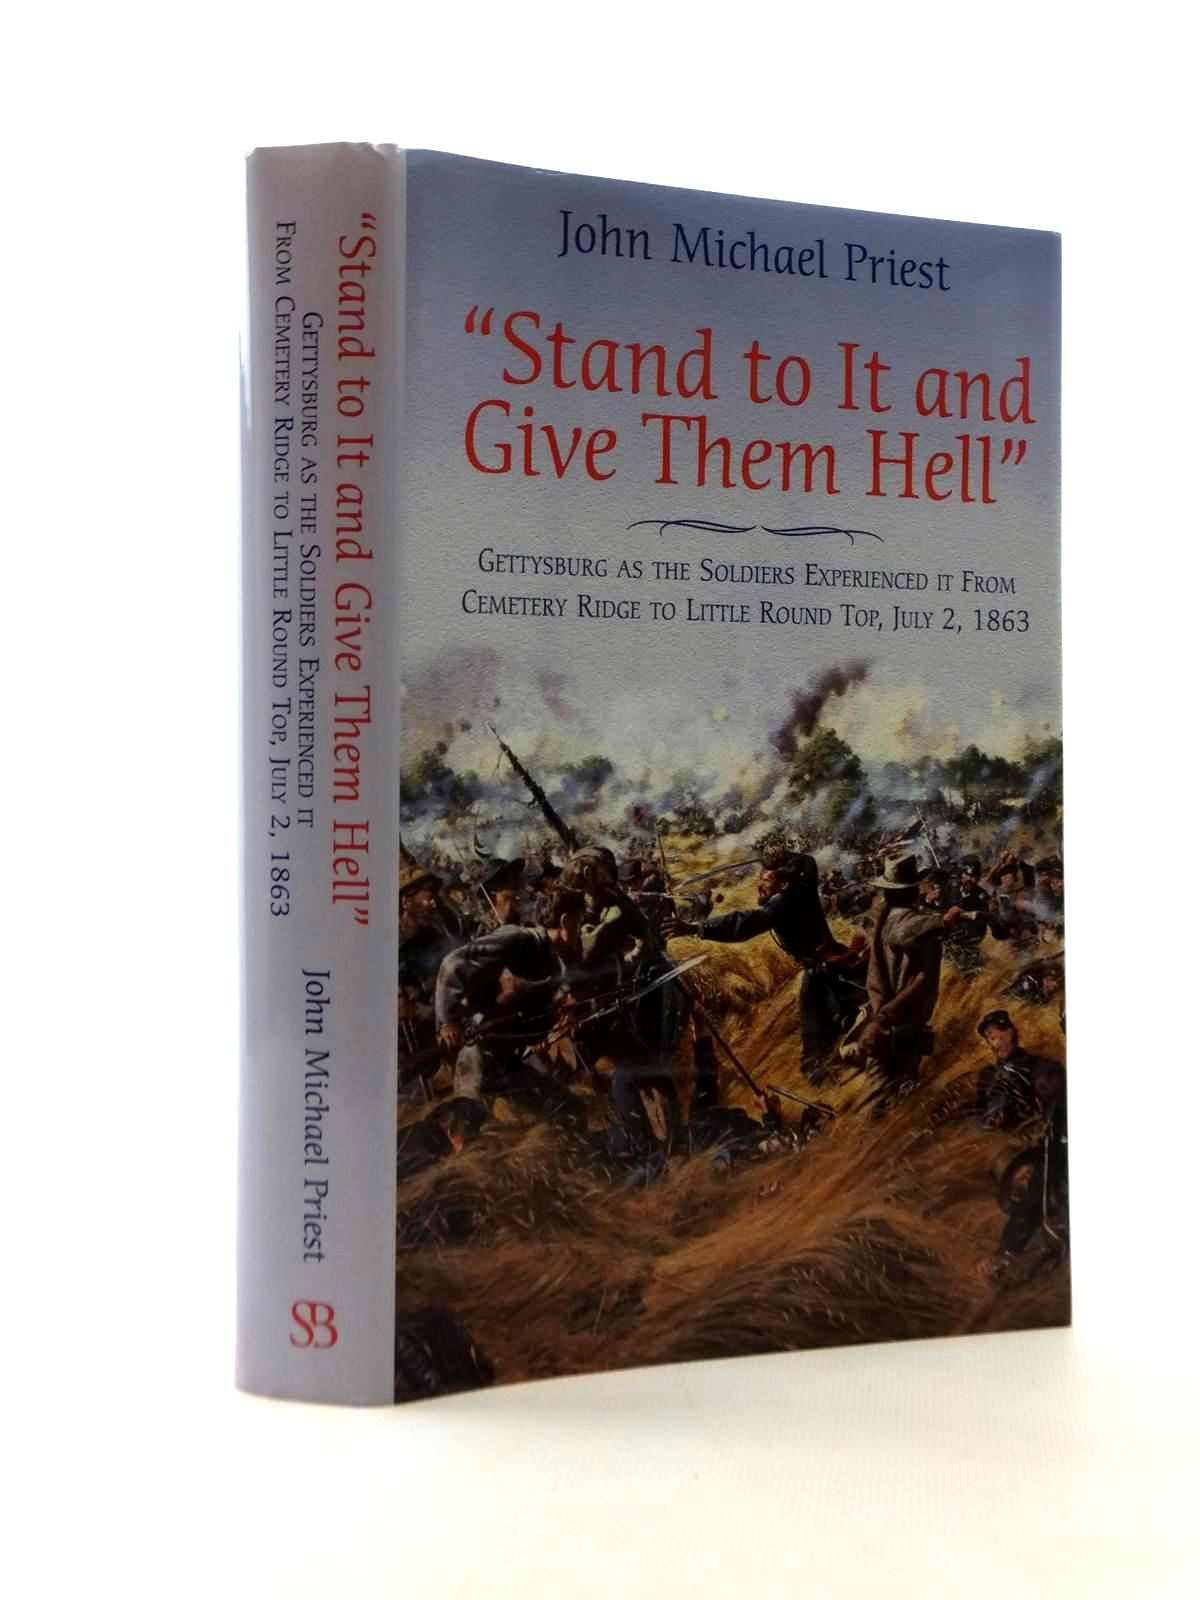 Photo of STAND TO IT AND GIVE THEM HELL GETTYSBURG AS THE SOLDIERS EXPERIENCED IT FROM CEMETERY RIDGE TO LITTLE ROUND TOP, JULY 2, 1863 written by Priest, John Michael published by Savas Beatie (STOCK CODE: 2123358)  for sale by Stella & Rose's Books